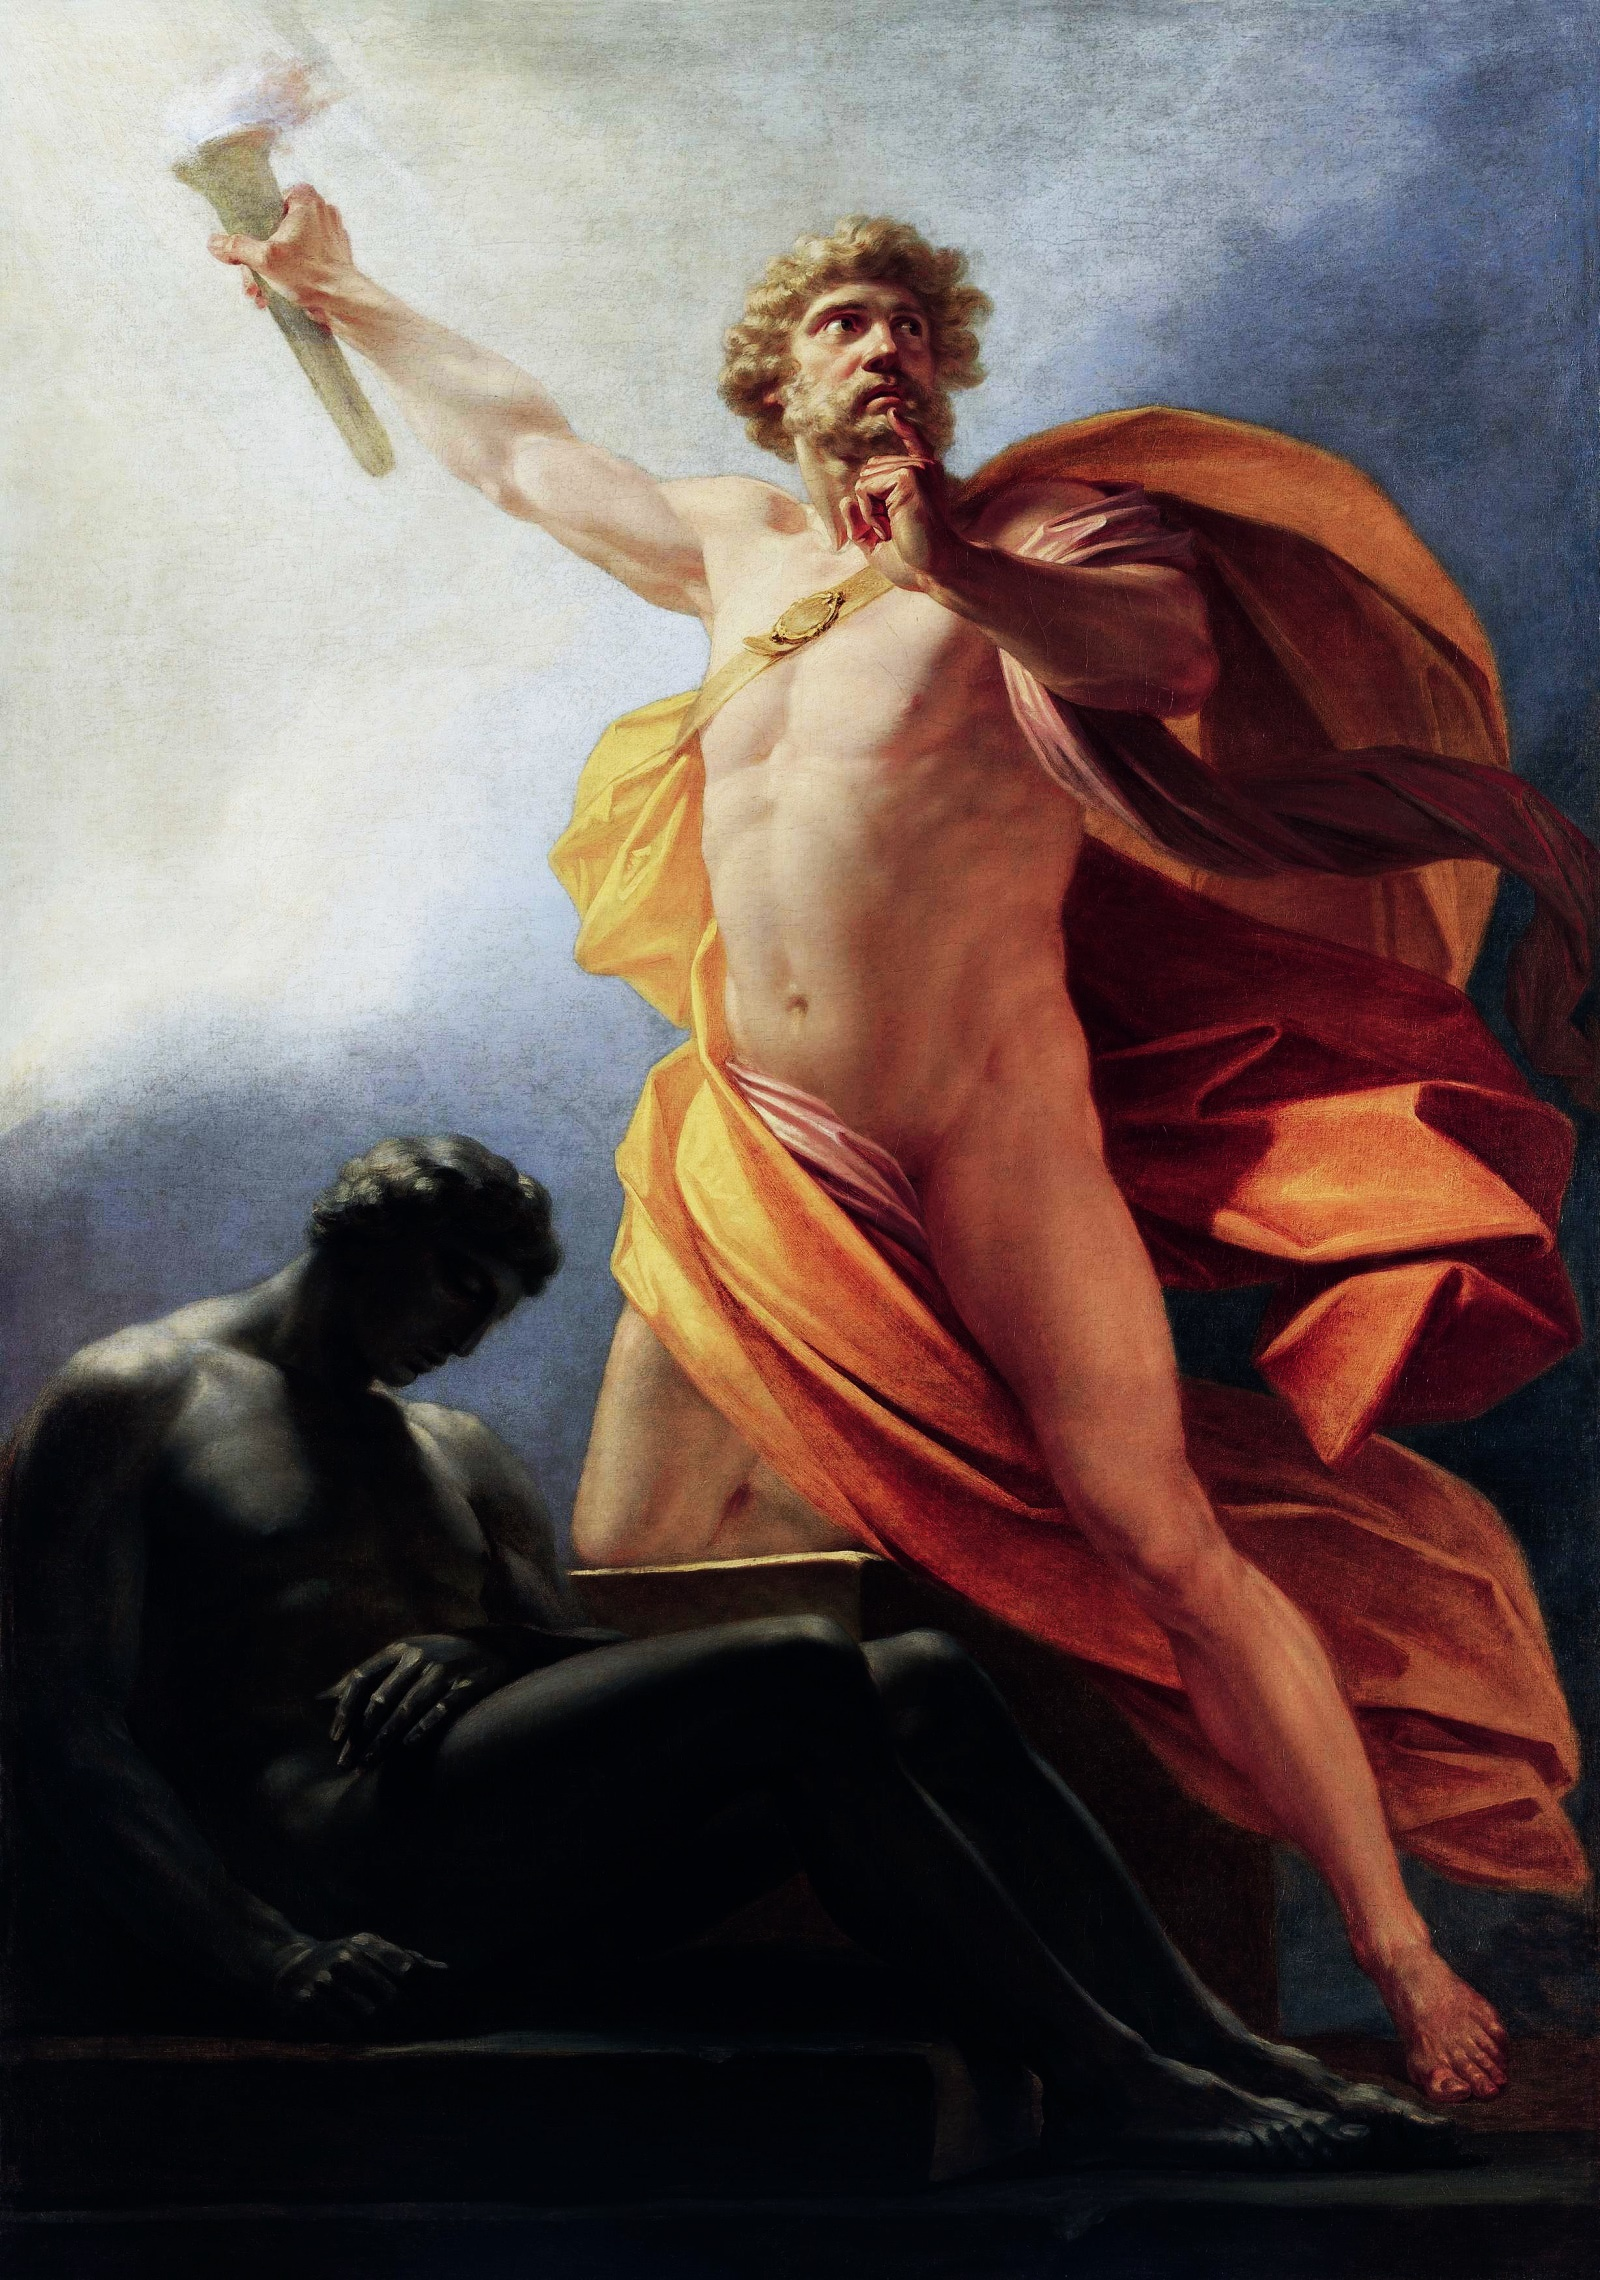 Heinrich Fueger 1817 - Prometheus Brings Fire To Mankind